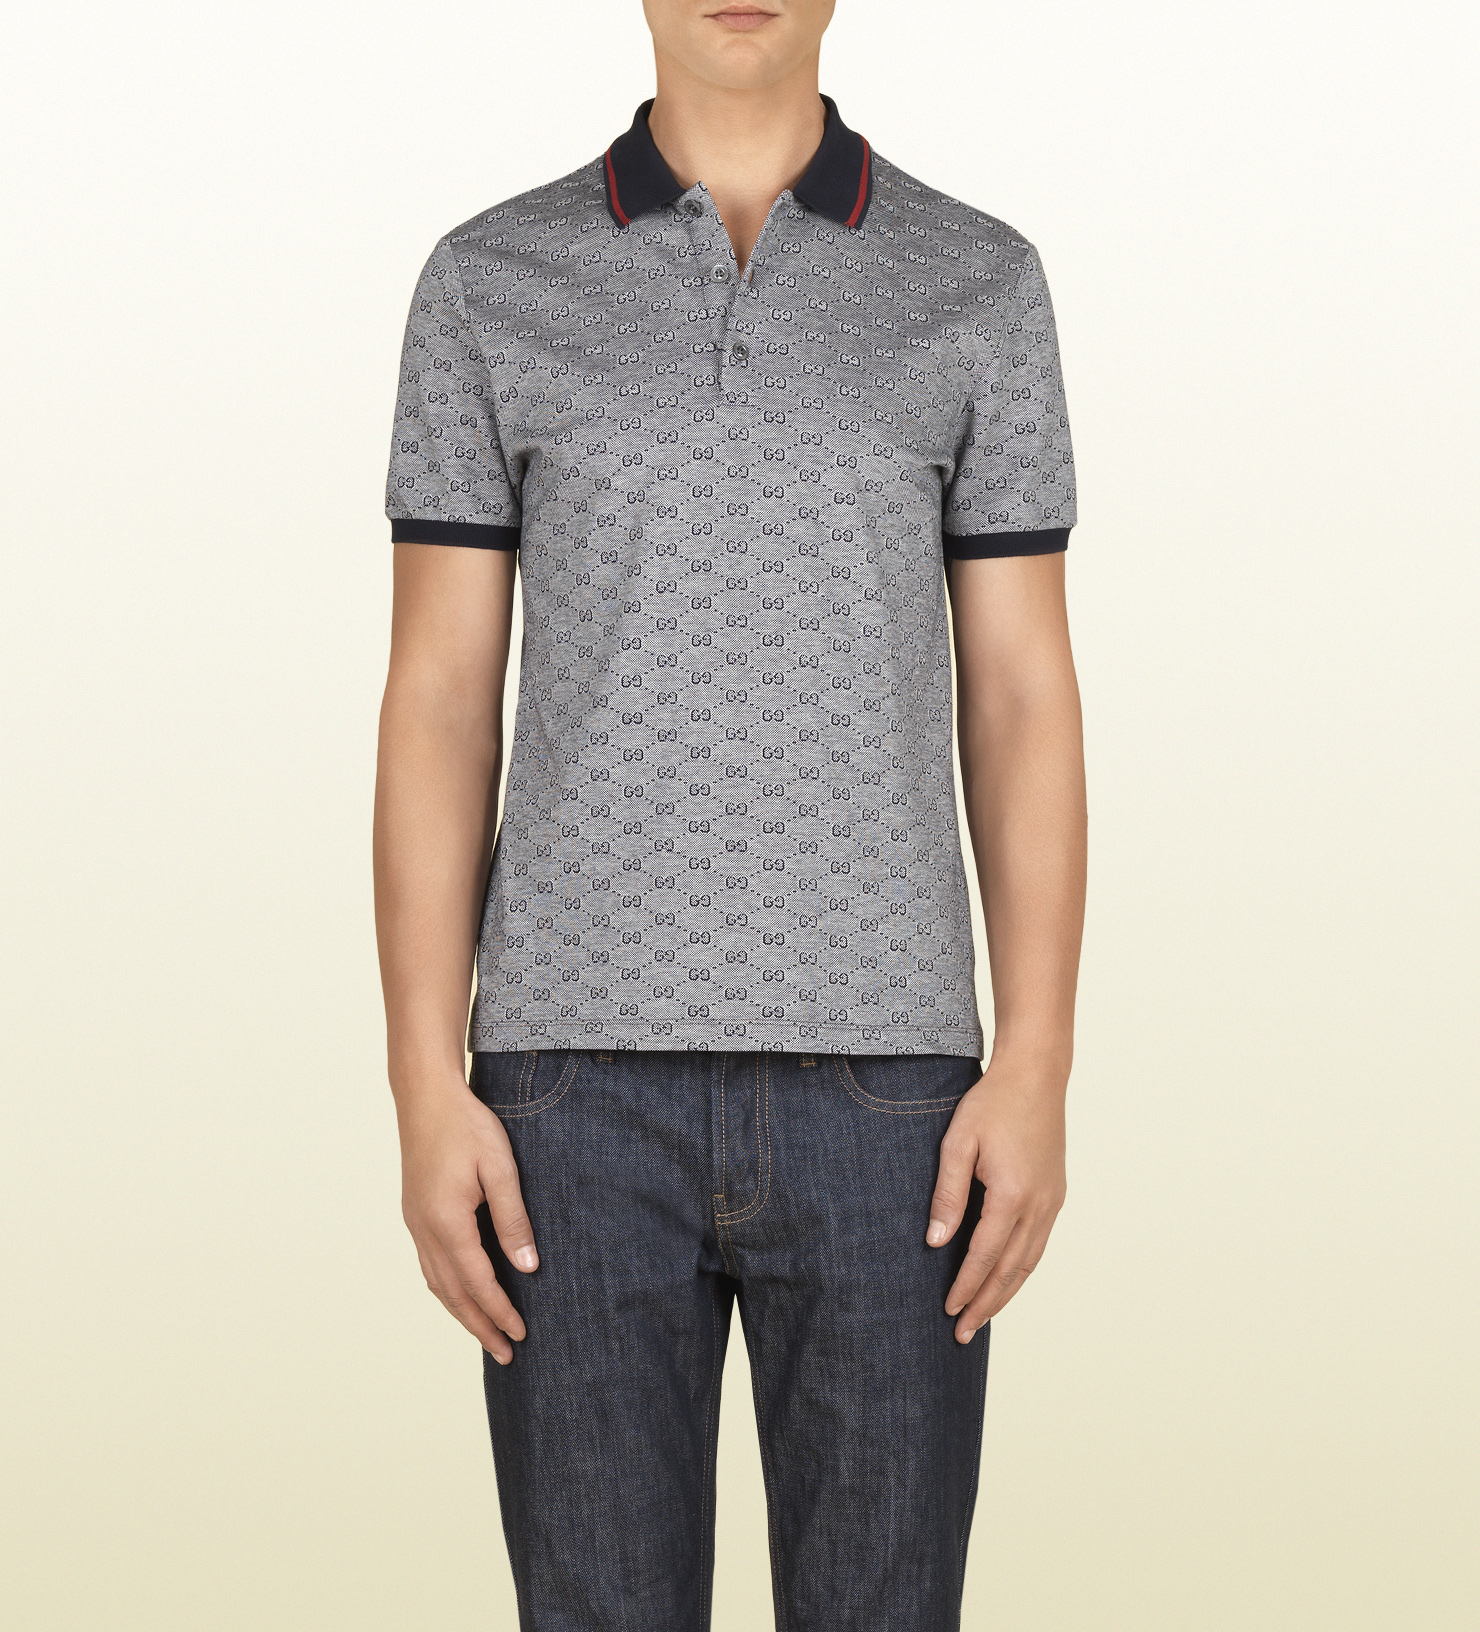 992c25a8 Gucci Ink Pique Gg Jacquard Short Sleeve Polo in Gray for Men - Lyst